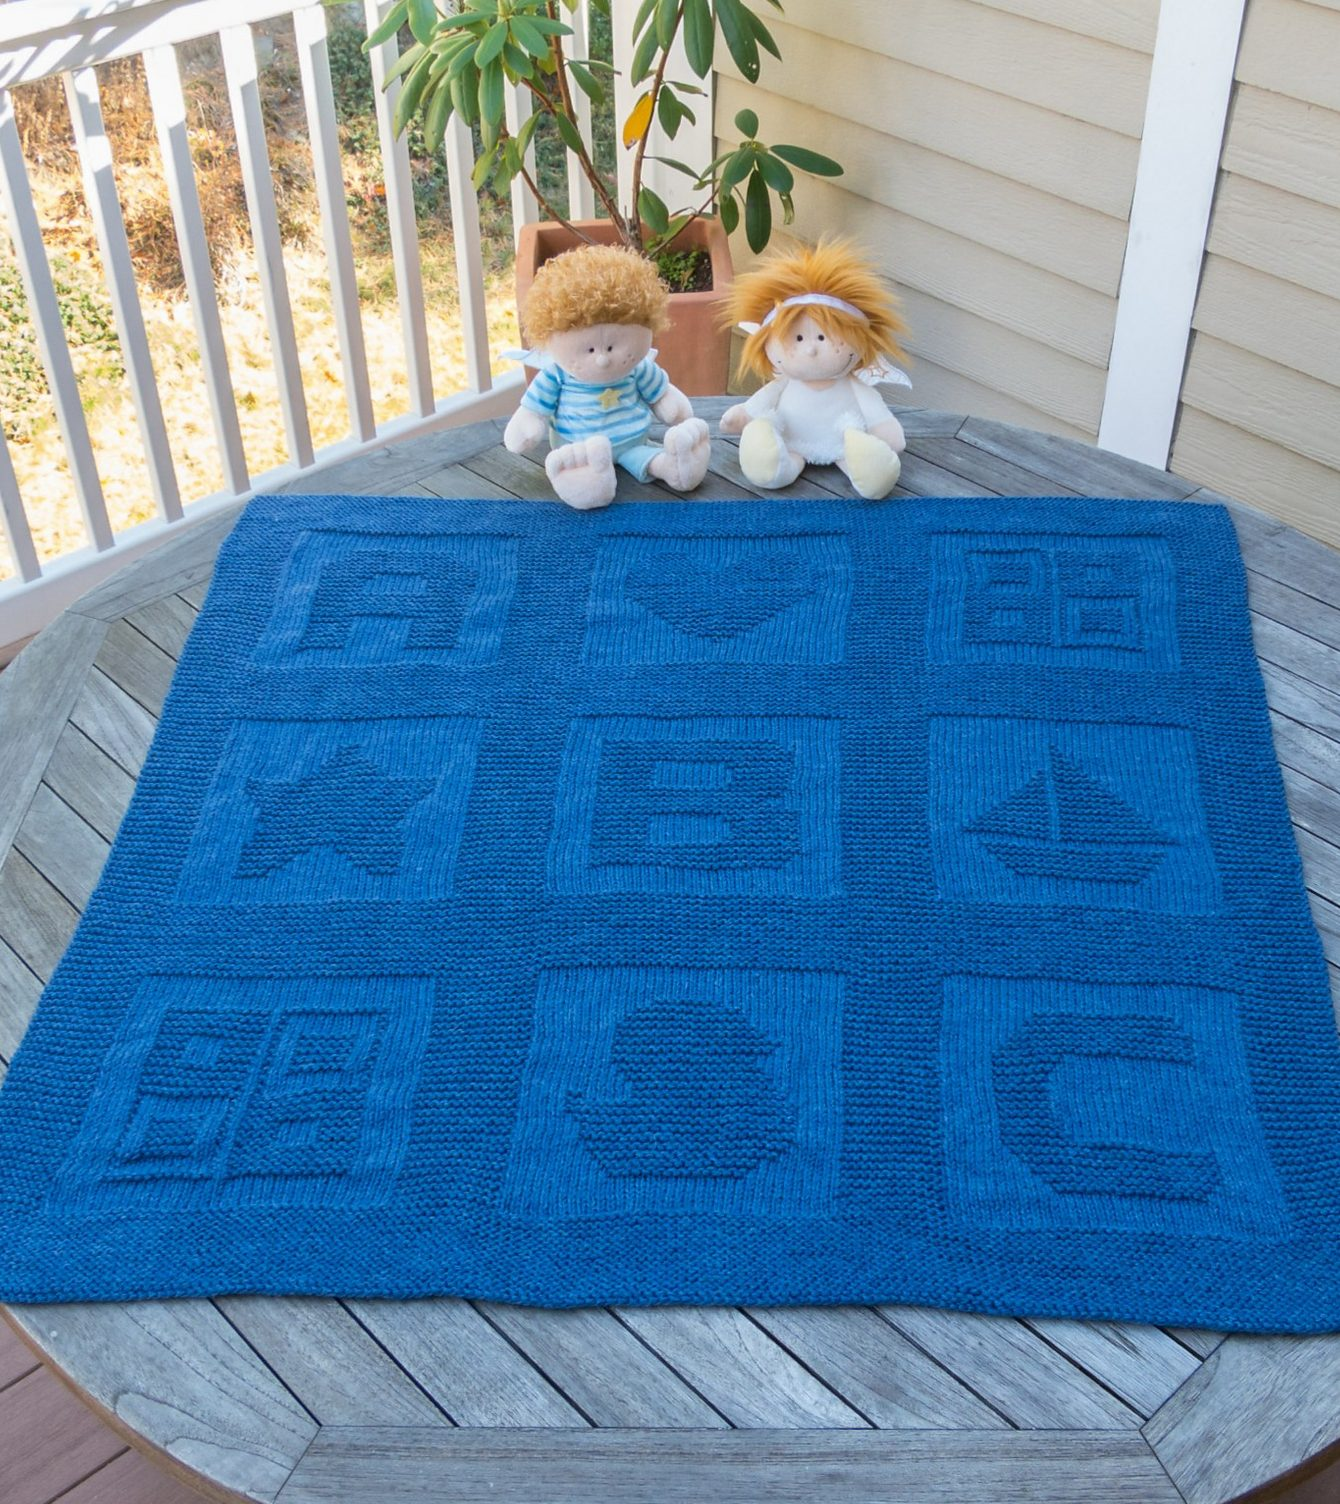 Knit baby blanket to keep your bundle of joy warm and comfortable